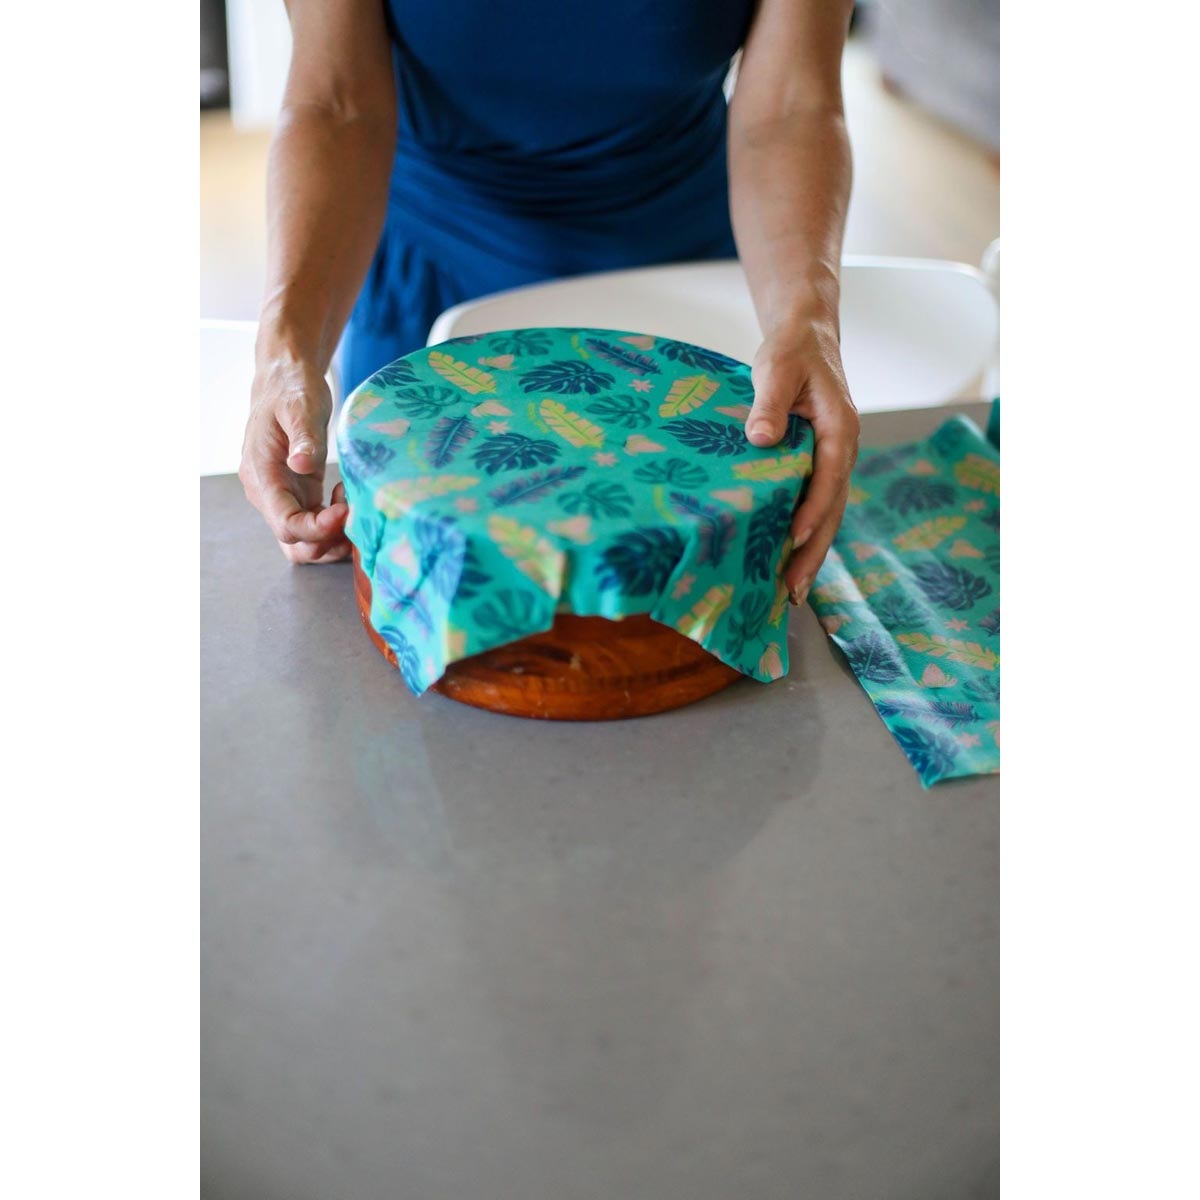 Meli Wraps Bulk Roll (42 in. x 13.5 in.) Reusable Beeswax Food Wrap, Lau (Monstera Green) Print